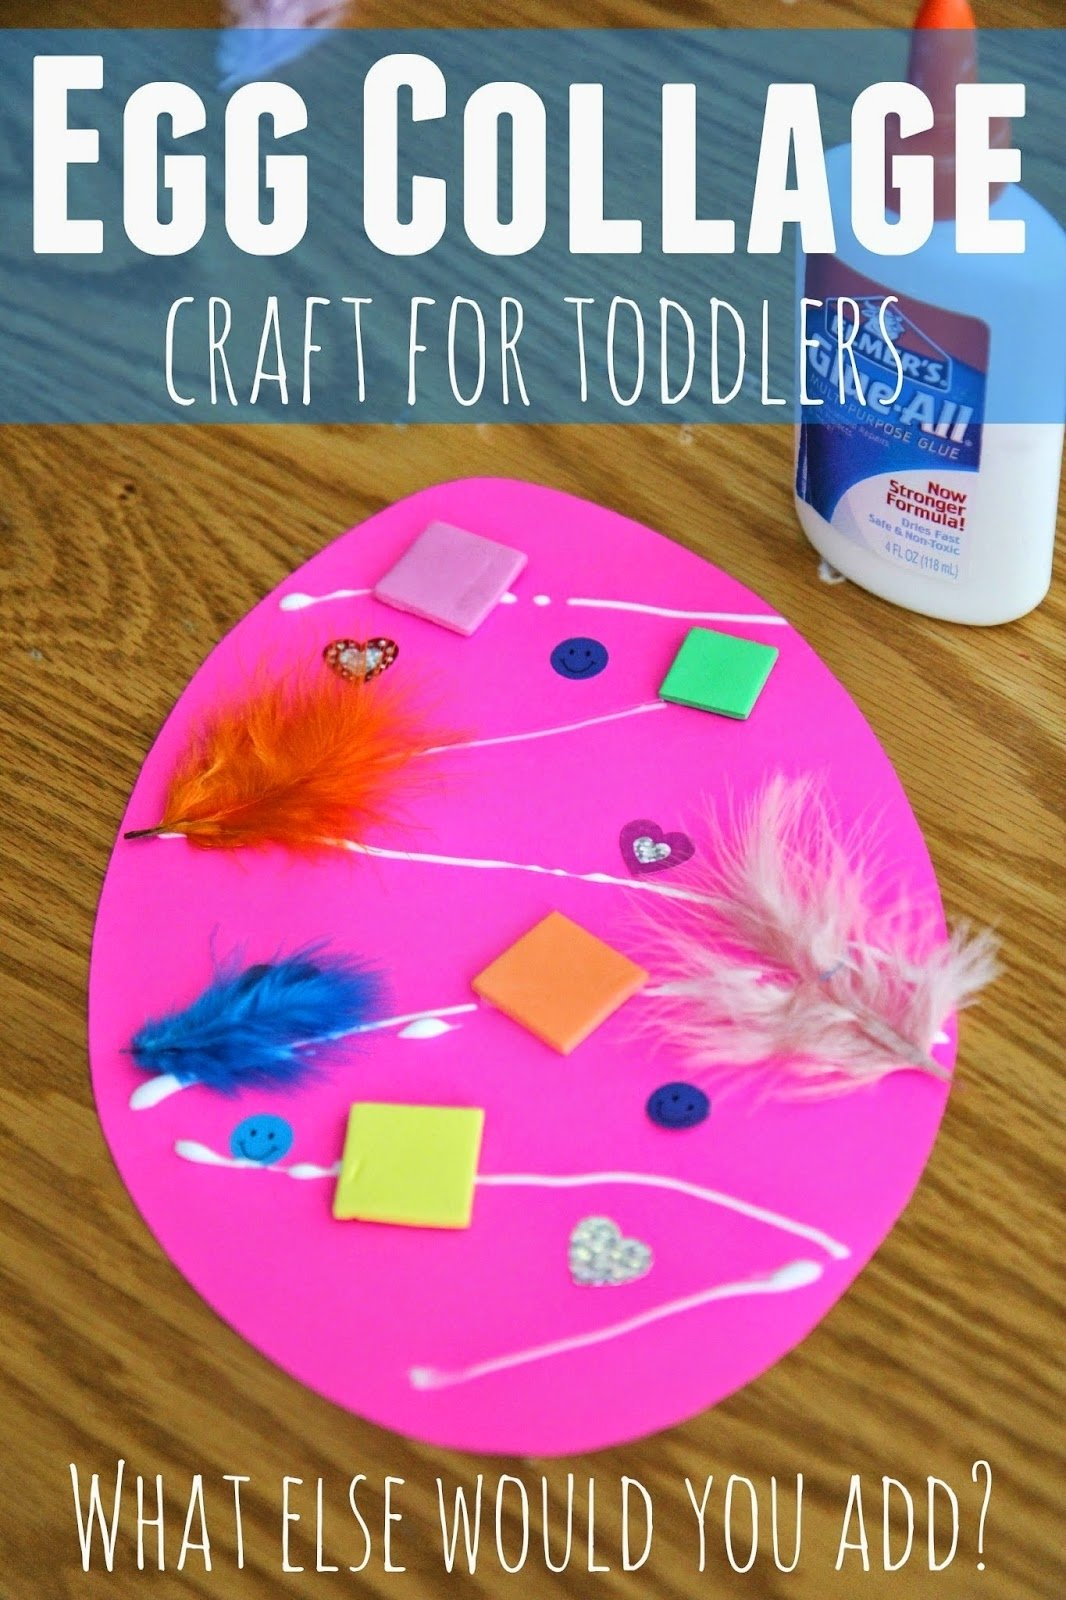 10 Stylish Easter Craft Ideas For Toddlers toddler approved easter egg collage craft for toddlers